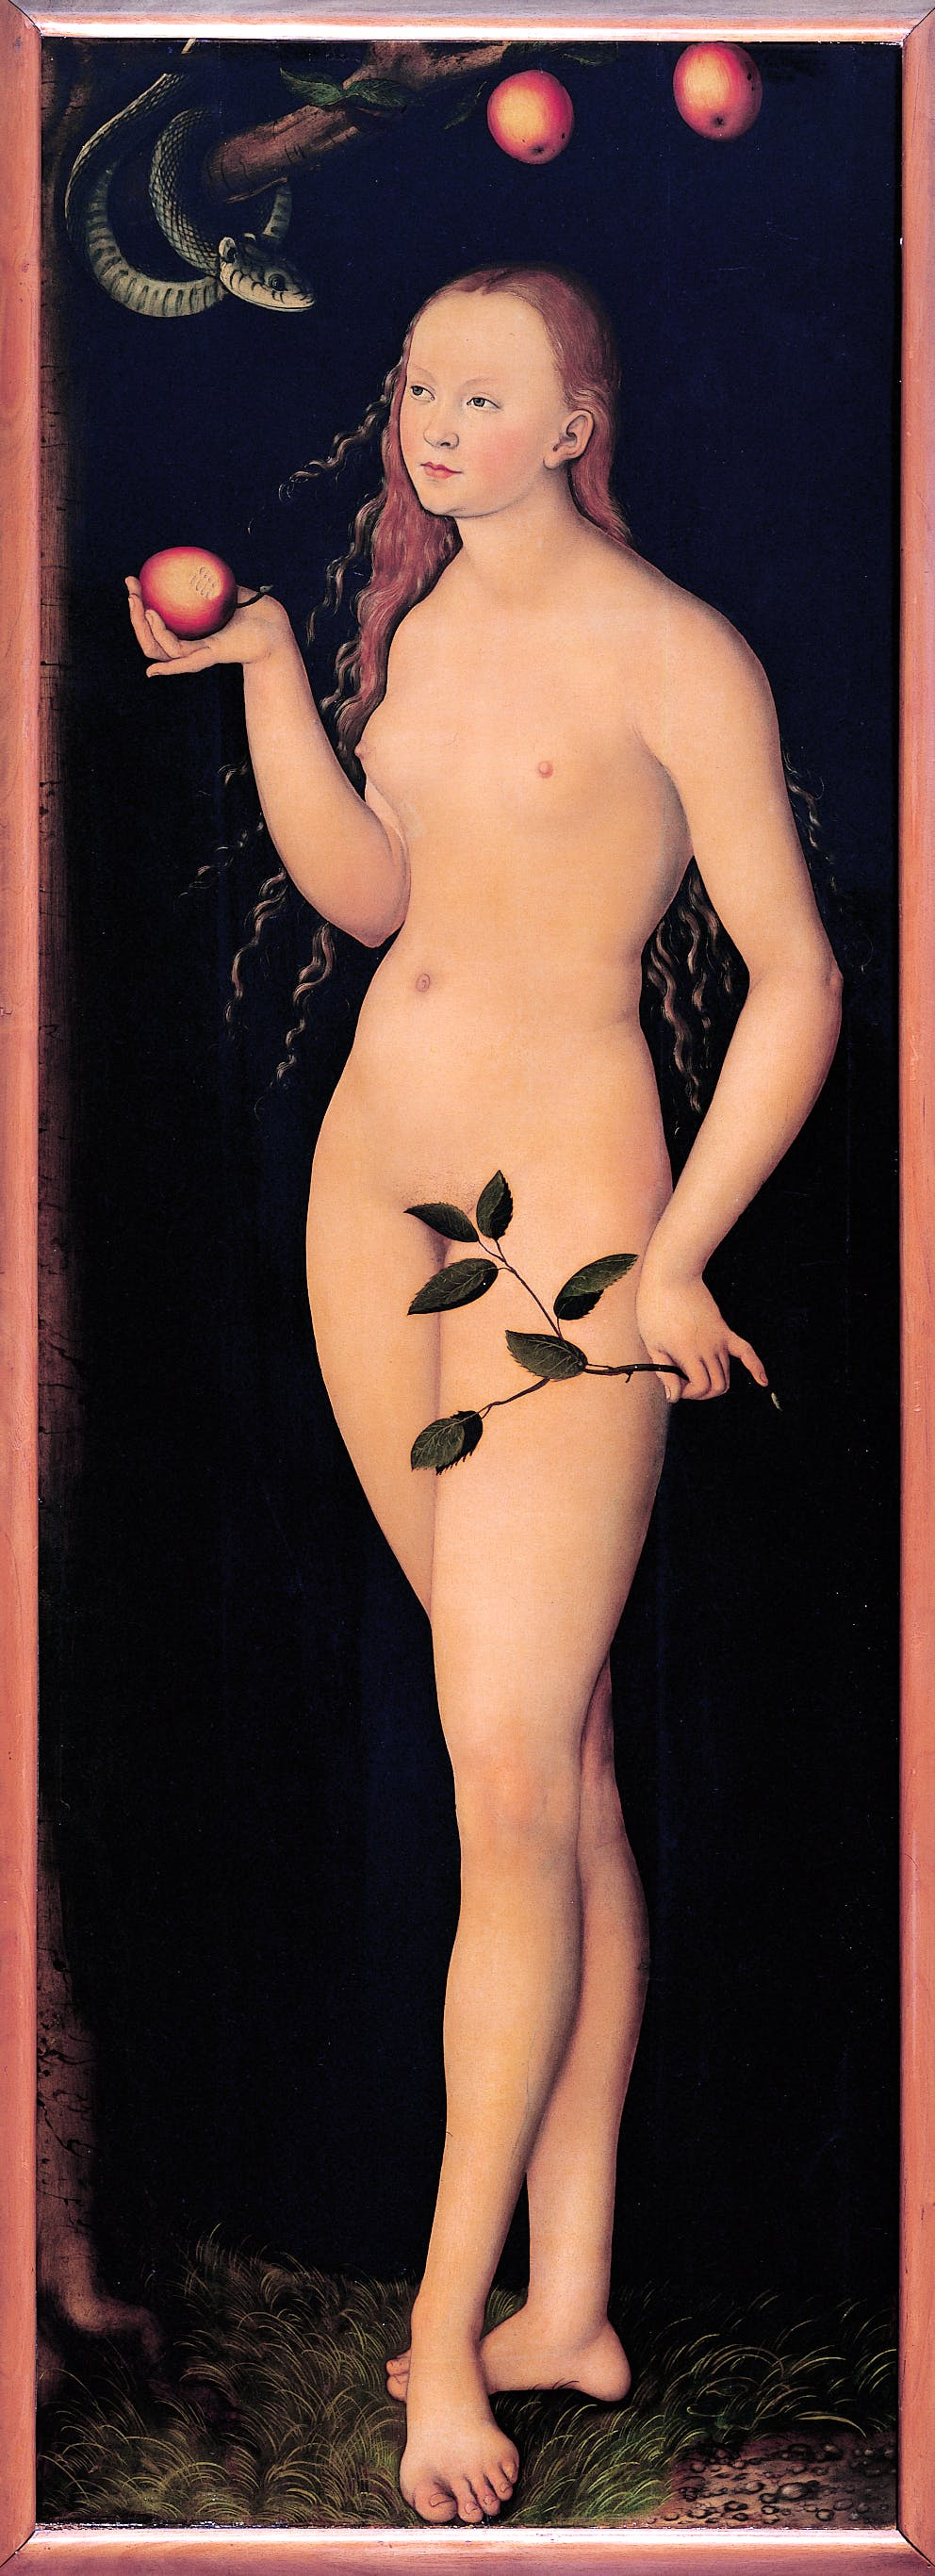 Adam and Eve (1528), Lucas Cranach the Elder. Galleria degli Uffizi, Florence